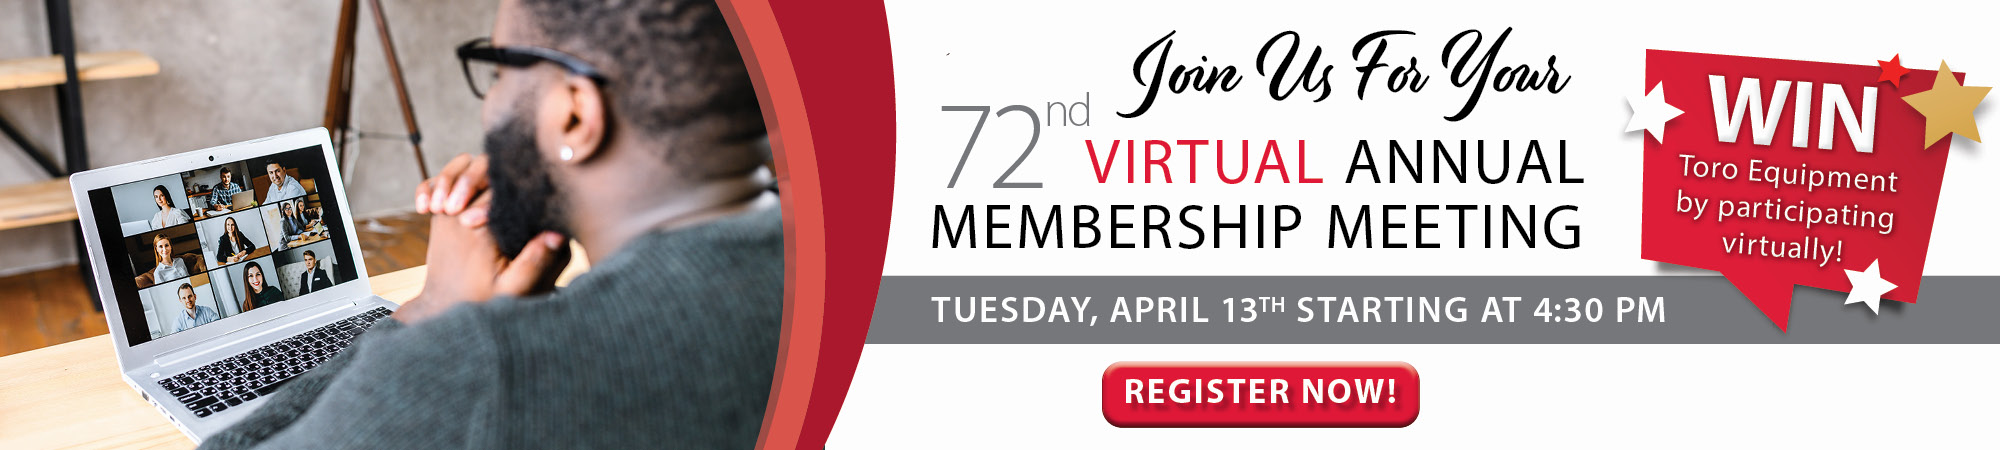 Virtual Annual Meeting Registration